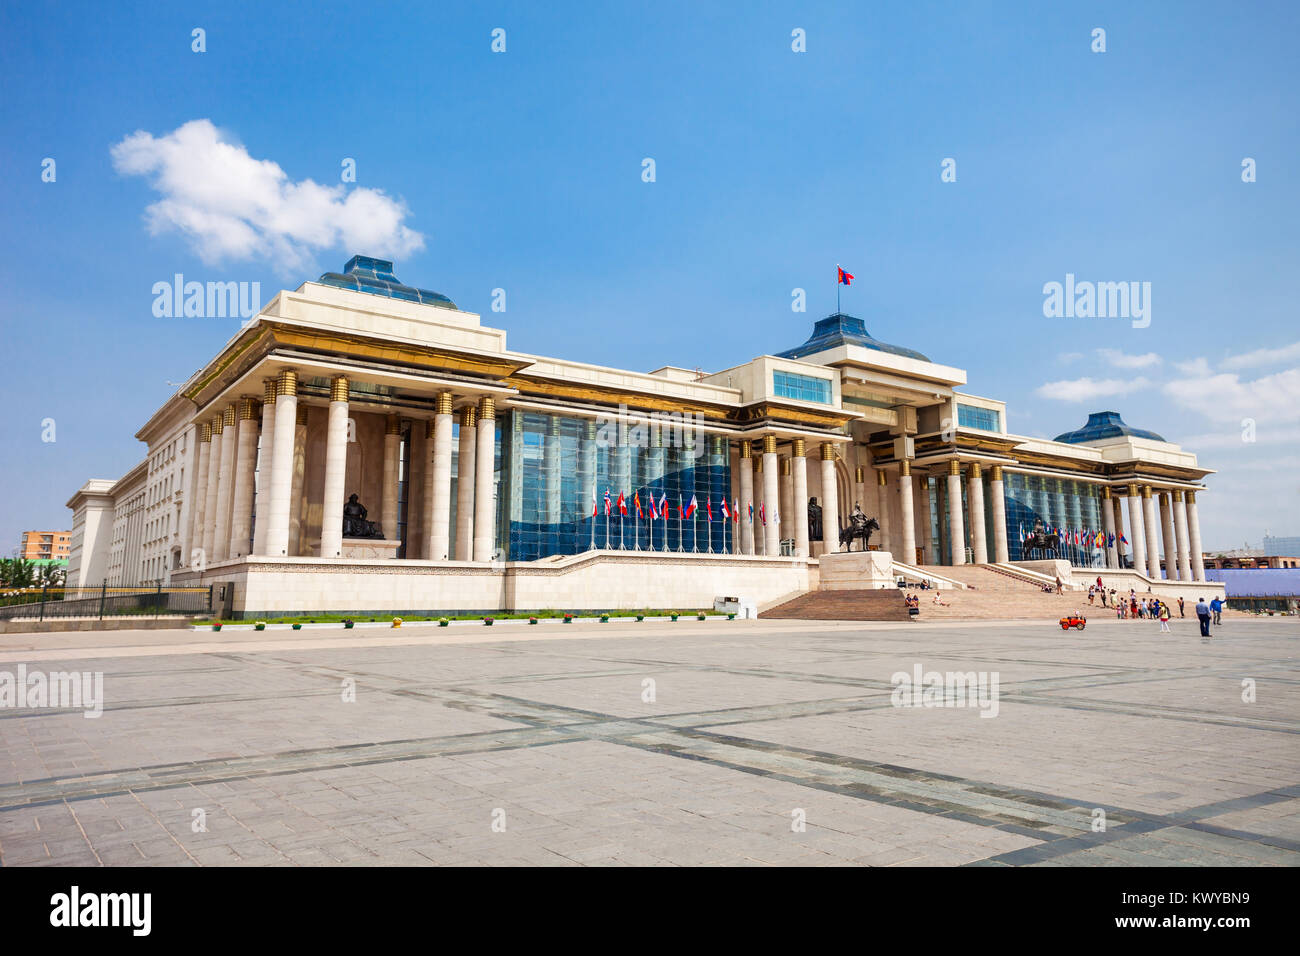 The Government Palace is located on the north side of Chinggis Square or Sukhbaatar Square in Ulaanbaatar, the capital - Stock Image